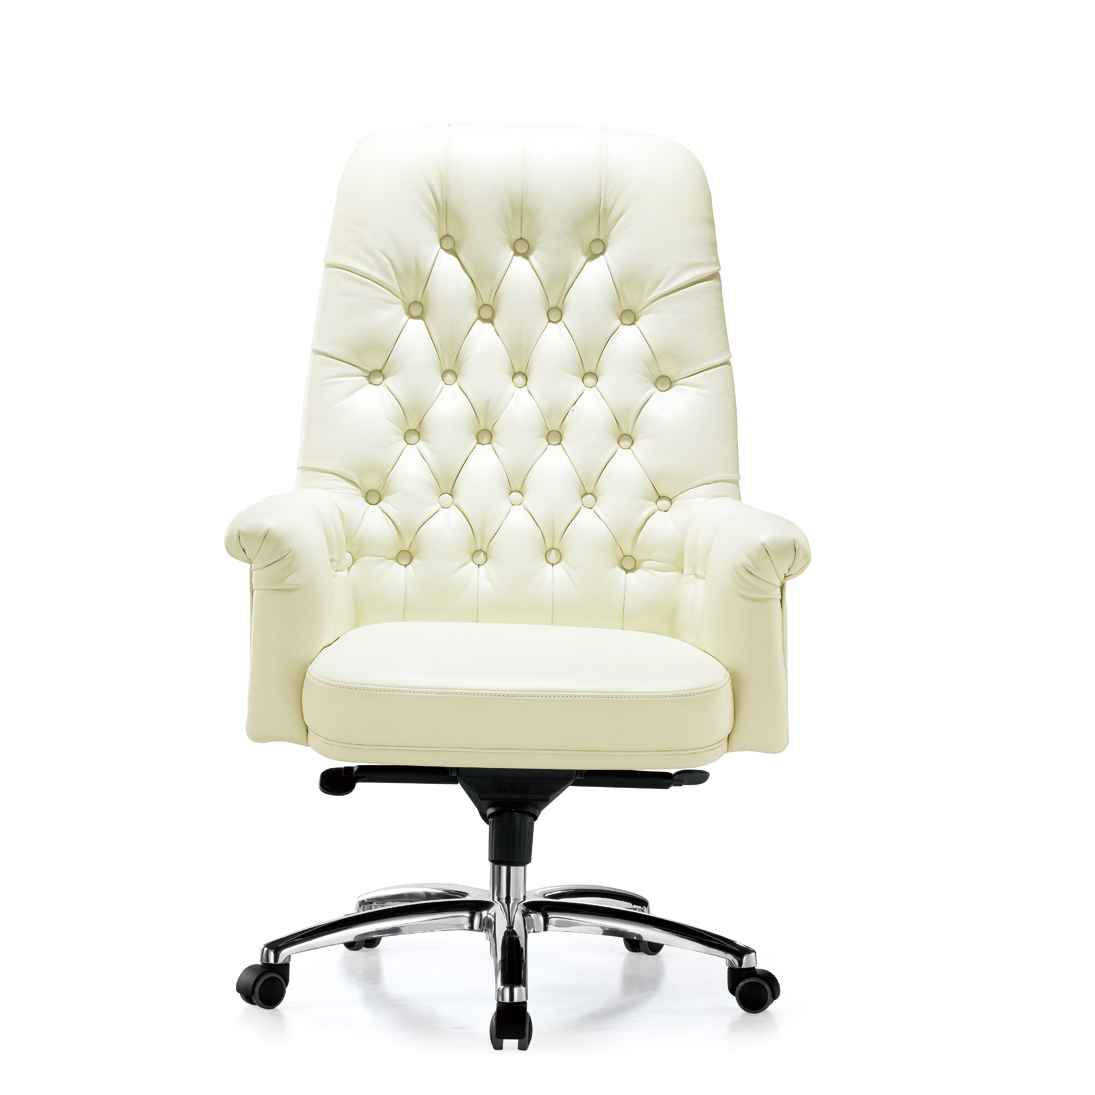 Swivel Luxury White Leather Office Chair